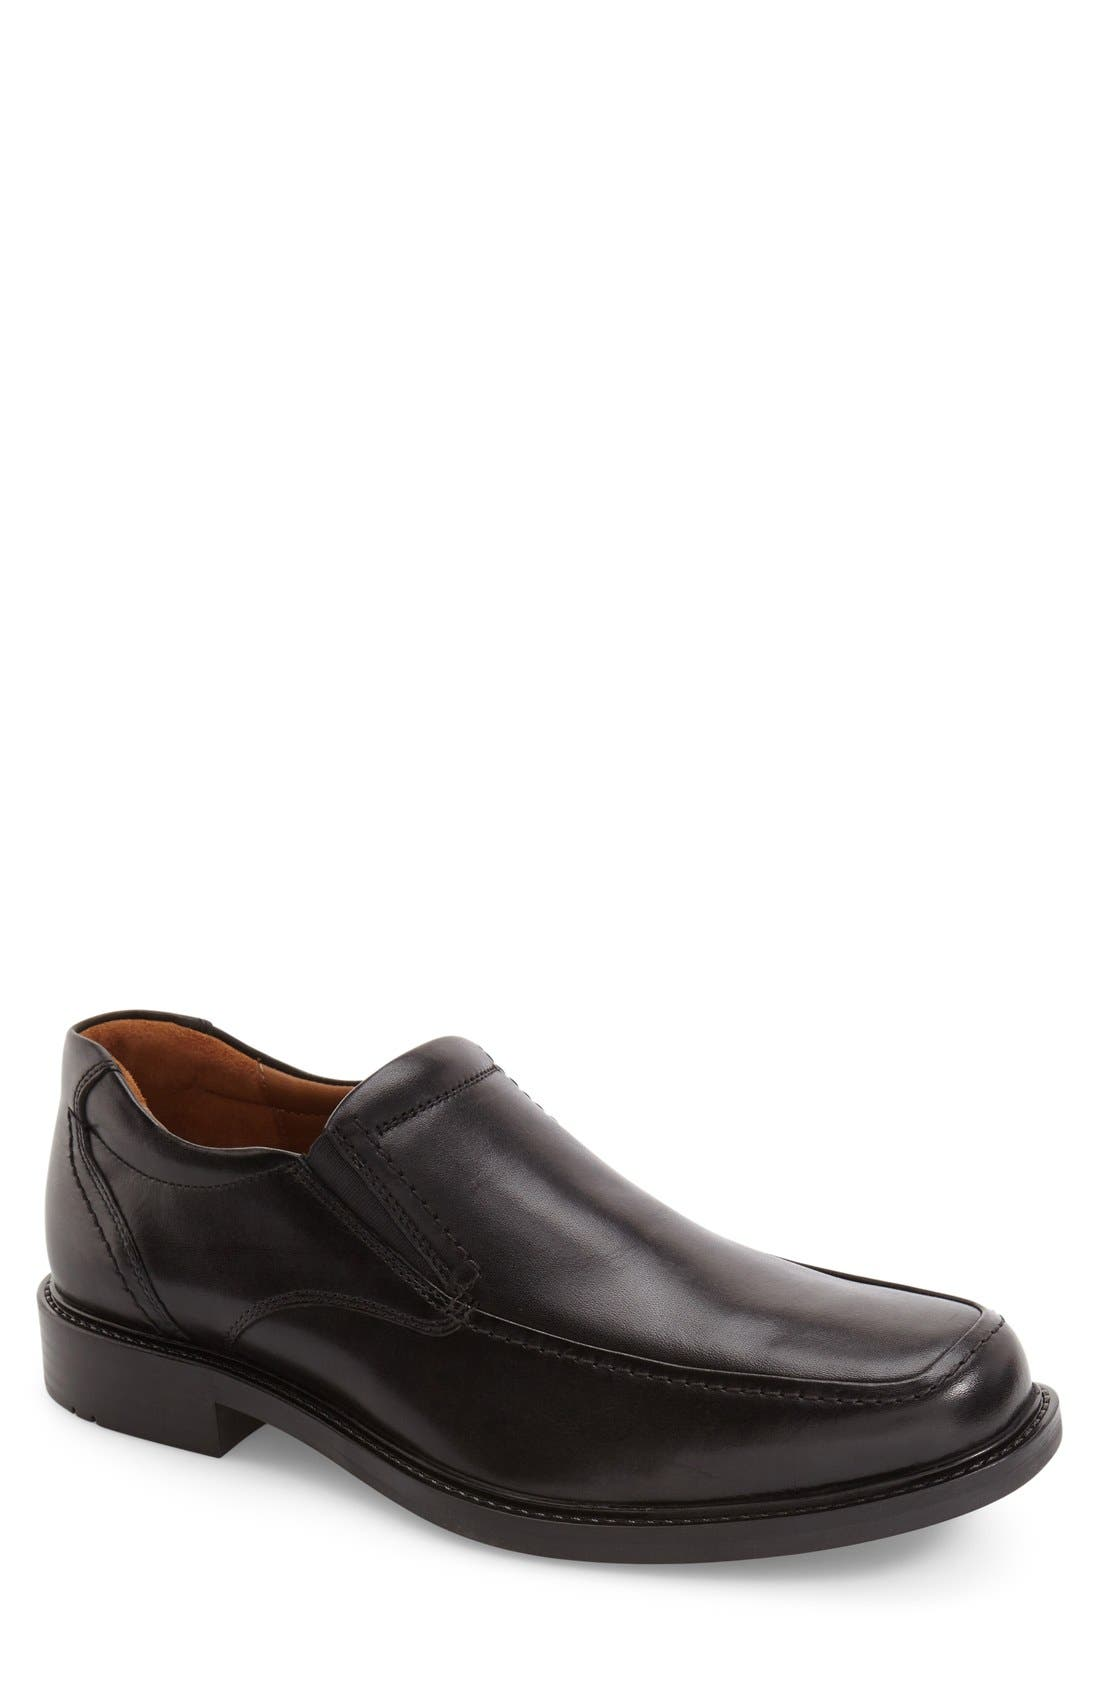 Tabor Venetian Loafer,                         Main,                         color, Black Leather